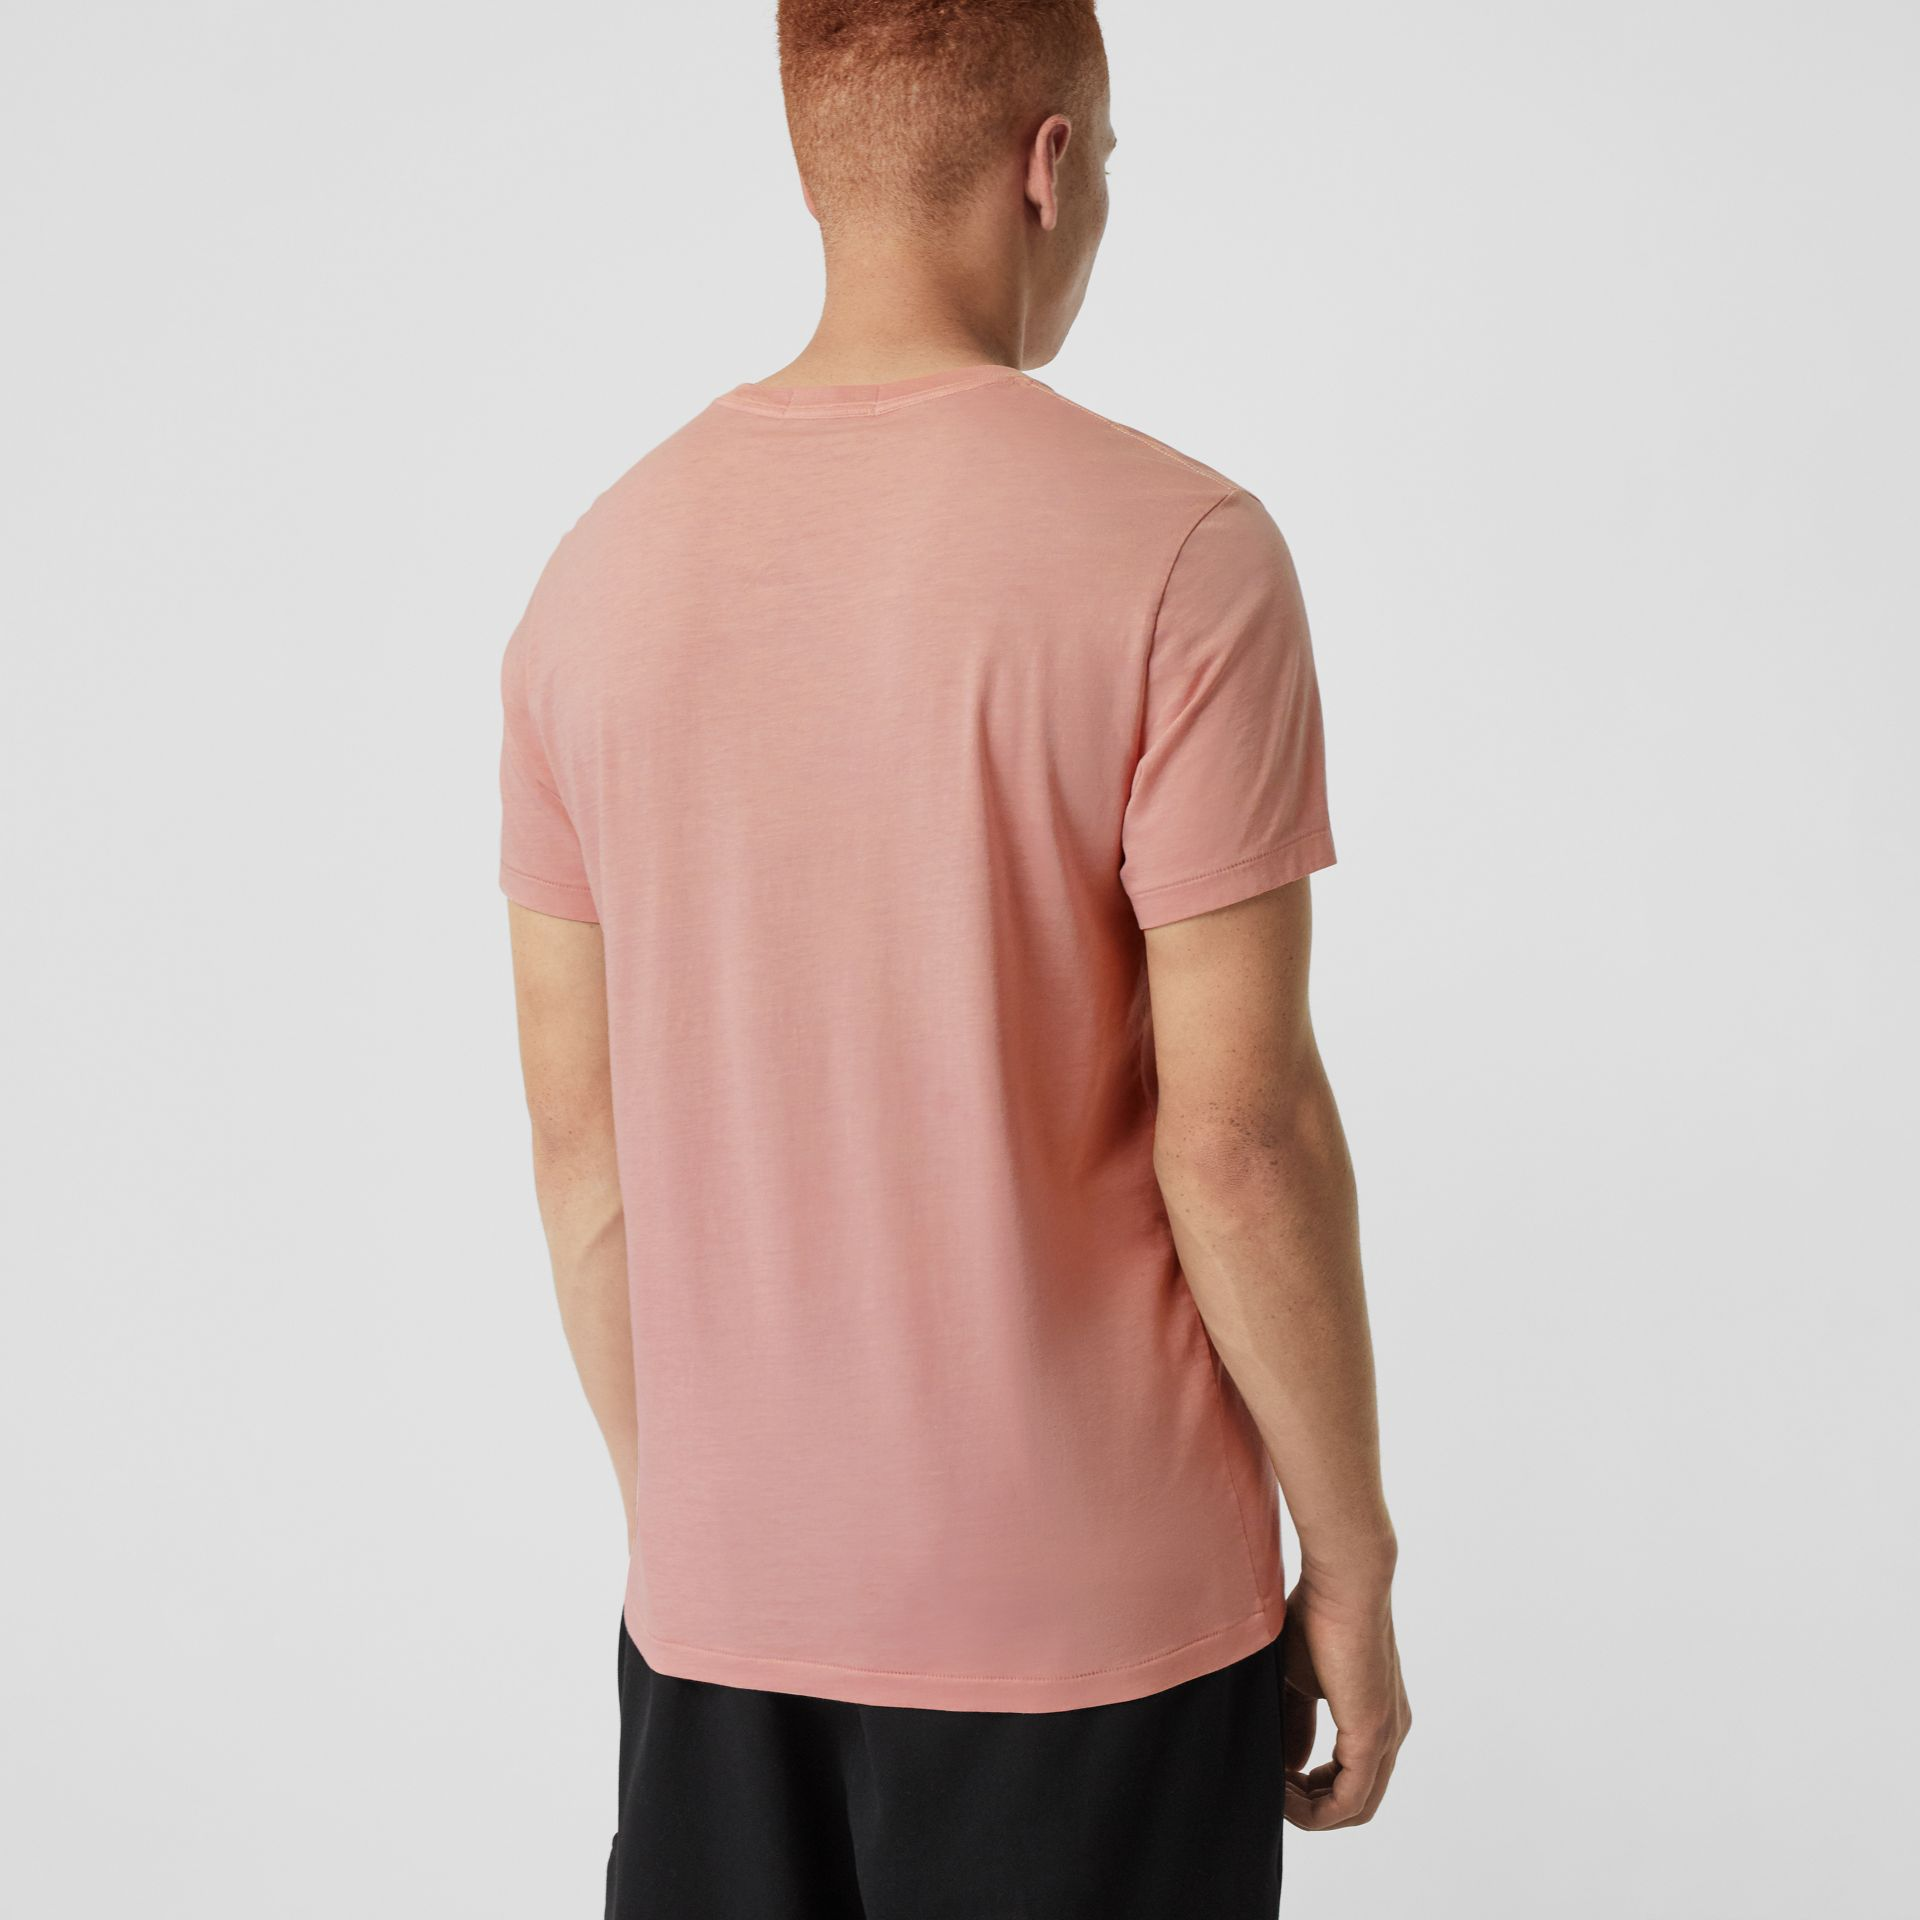 Cotton T-shirt in Chalk Pink - Men | Burberry Australia - gallery image 2